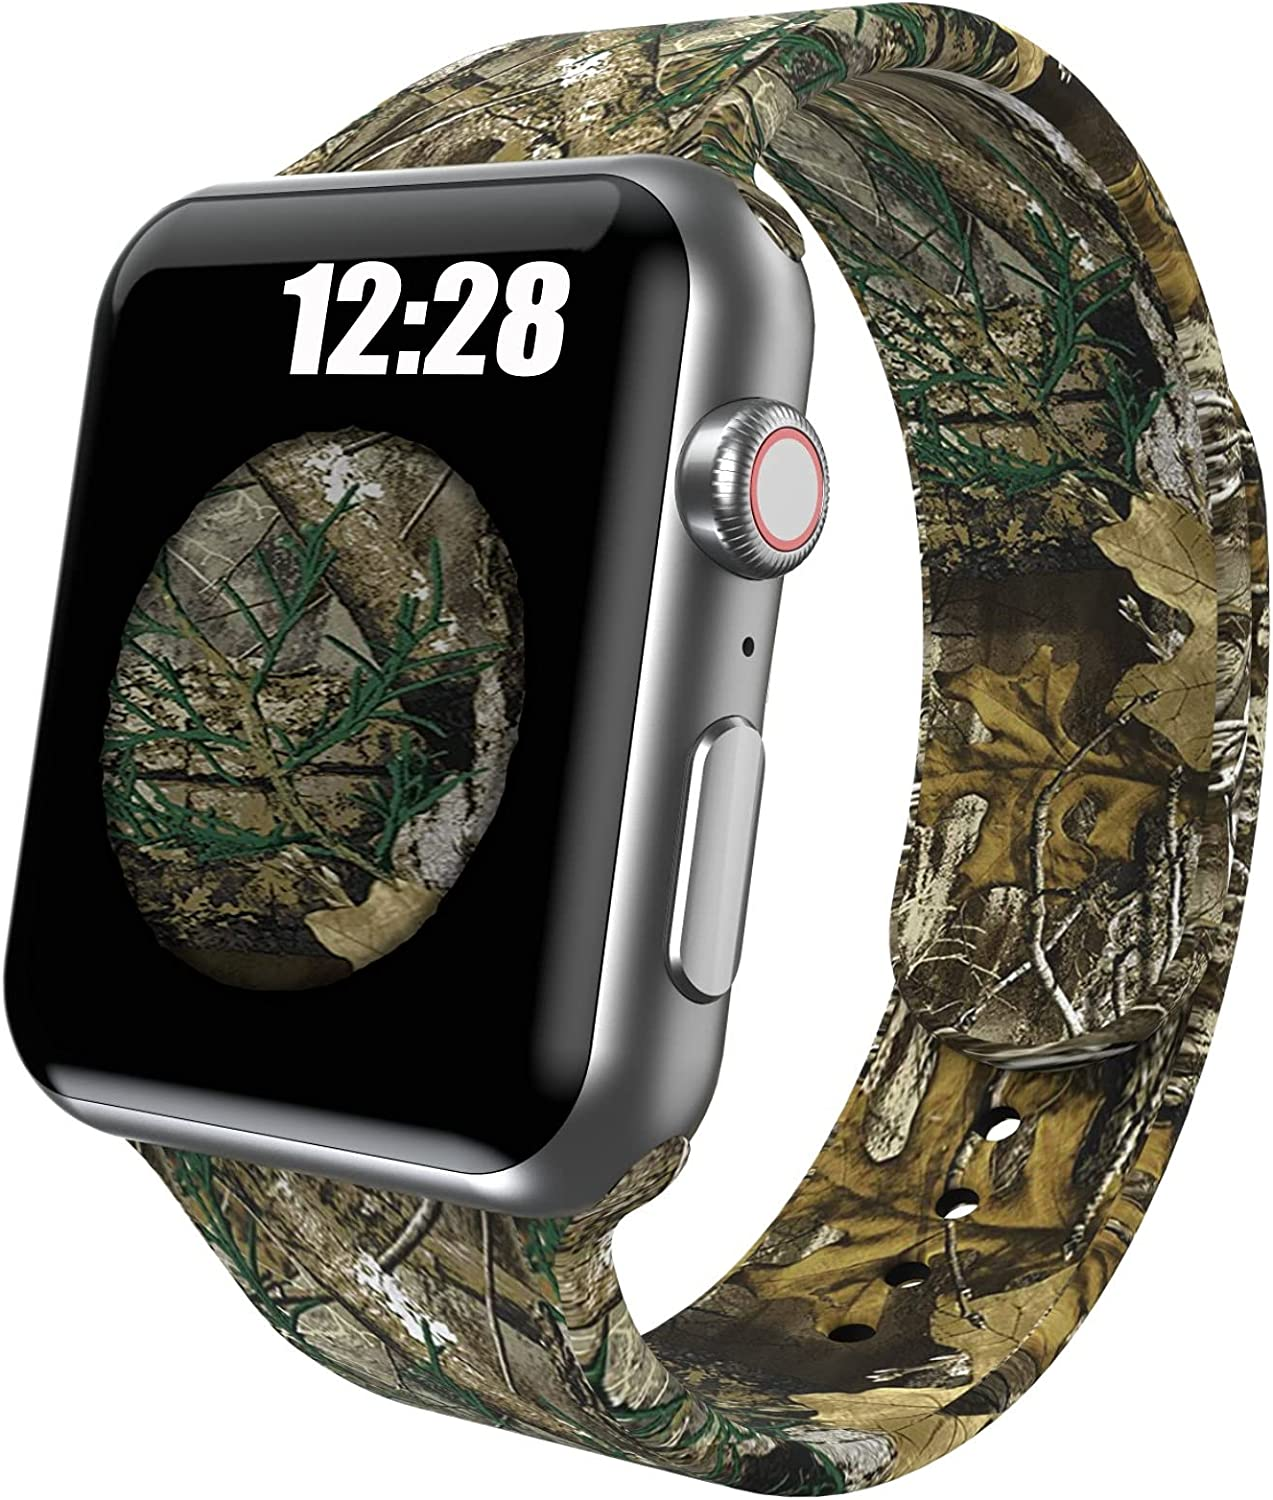 OTTARTAKS Sport Band Compatible with Apple Watch Bands 42mm 44mm Men Boys, Silicone Realtree Camo Xtra Apple Watch Band for iWatch Series 6 5 SE 4 3 2 1